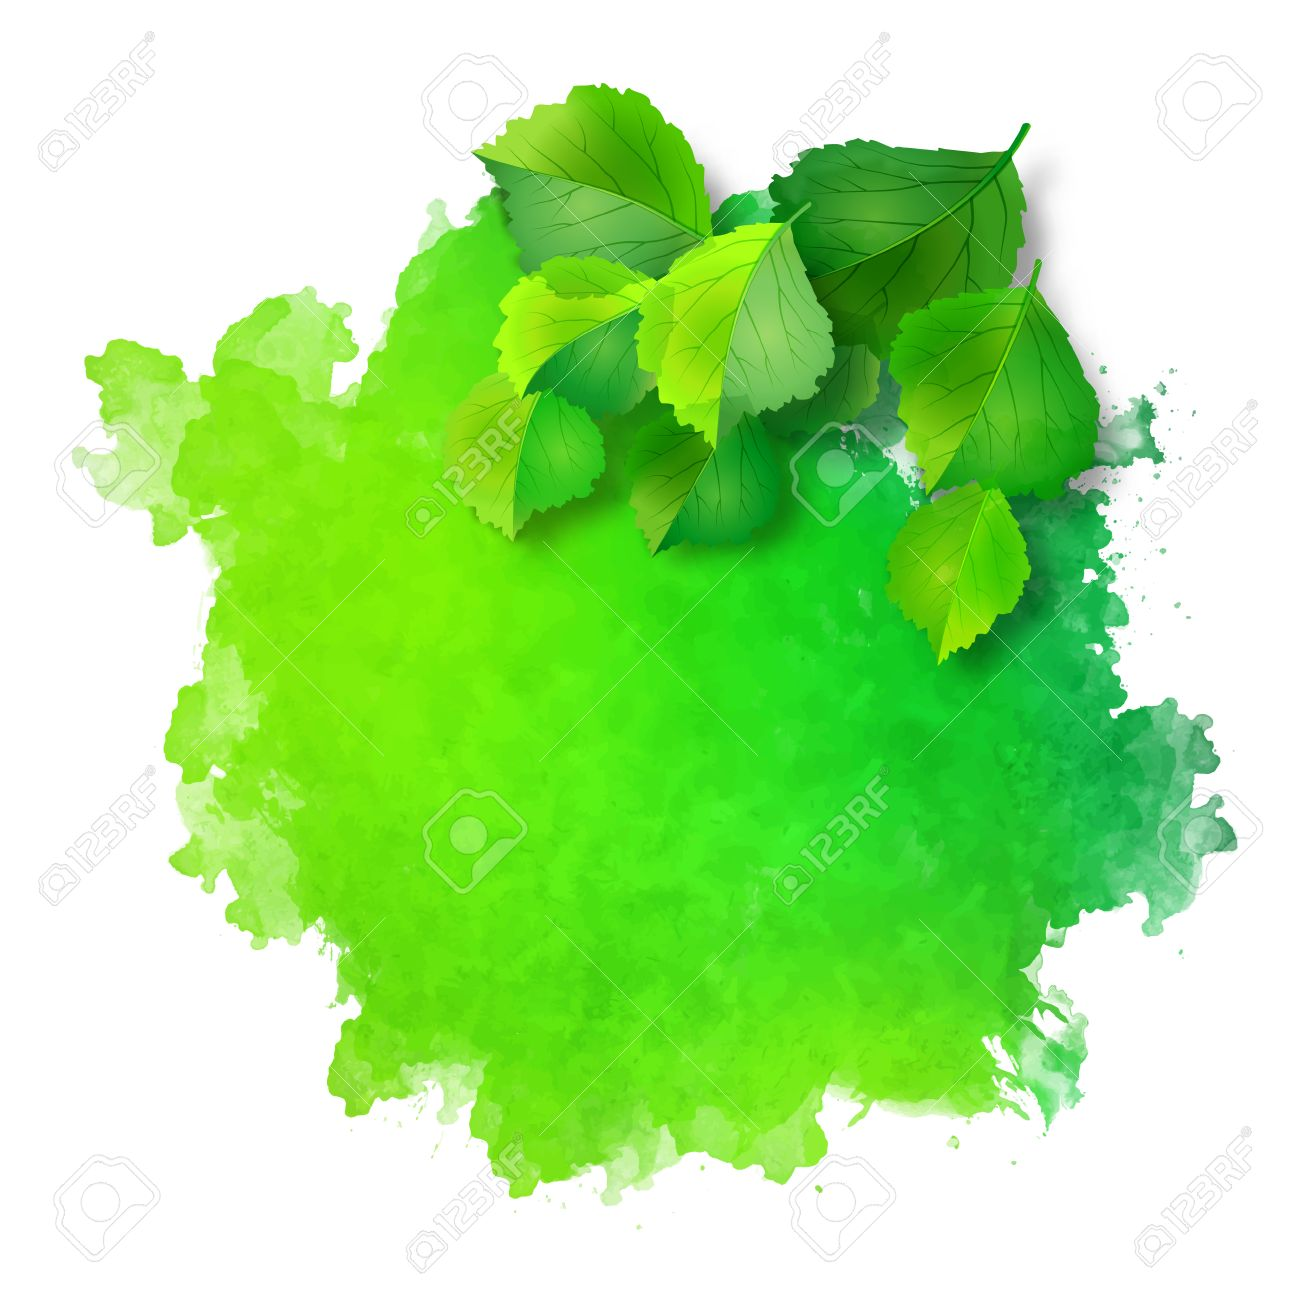 abstract vector watercolor spot with green leaves on rough grunge rh 123rf com grunge texture vector ai grunge texture vector png